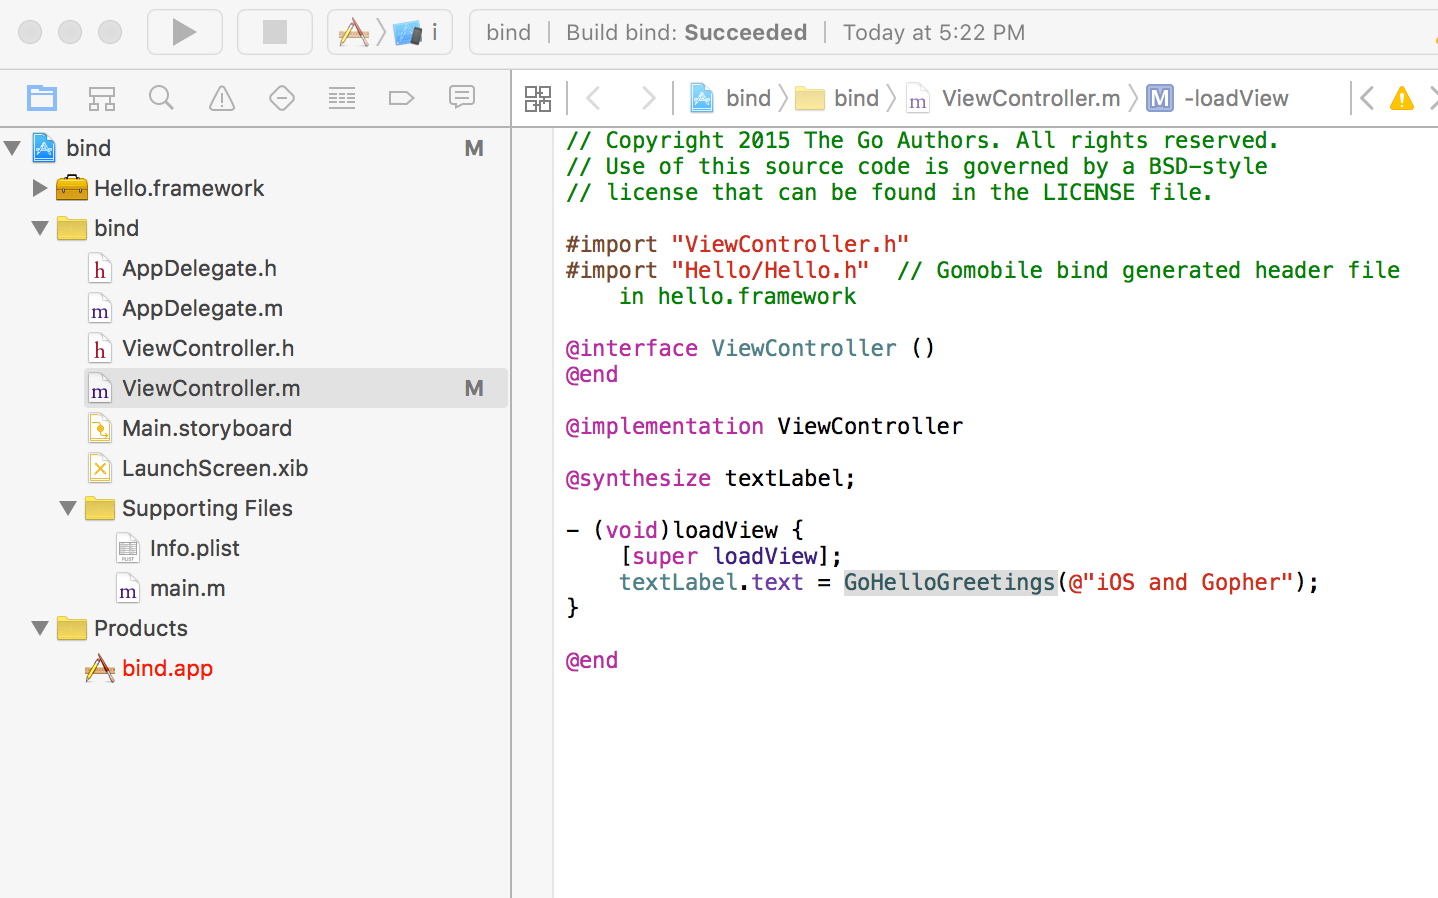 Xcode project layout with Hello.framework